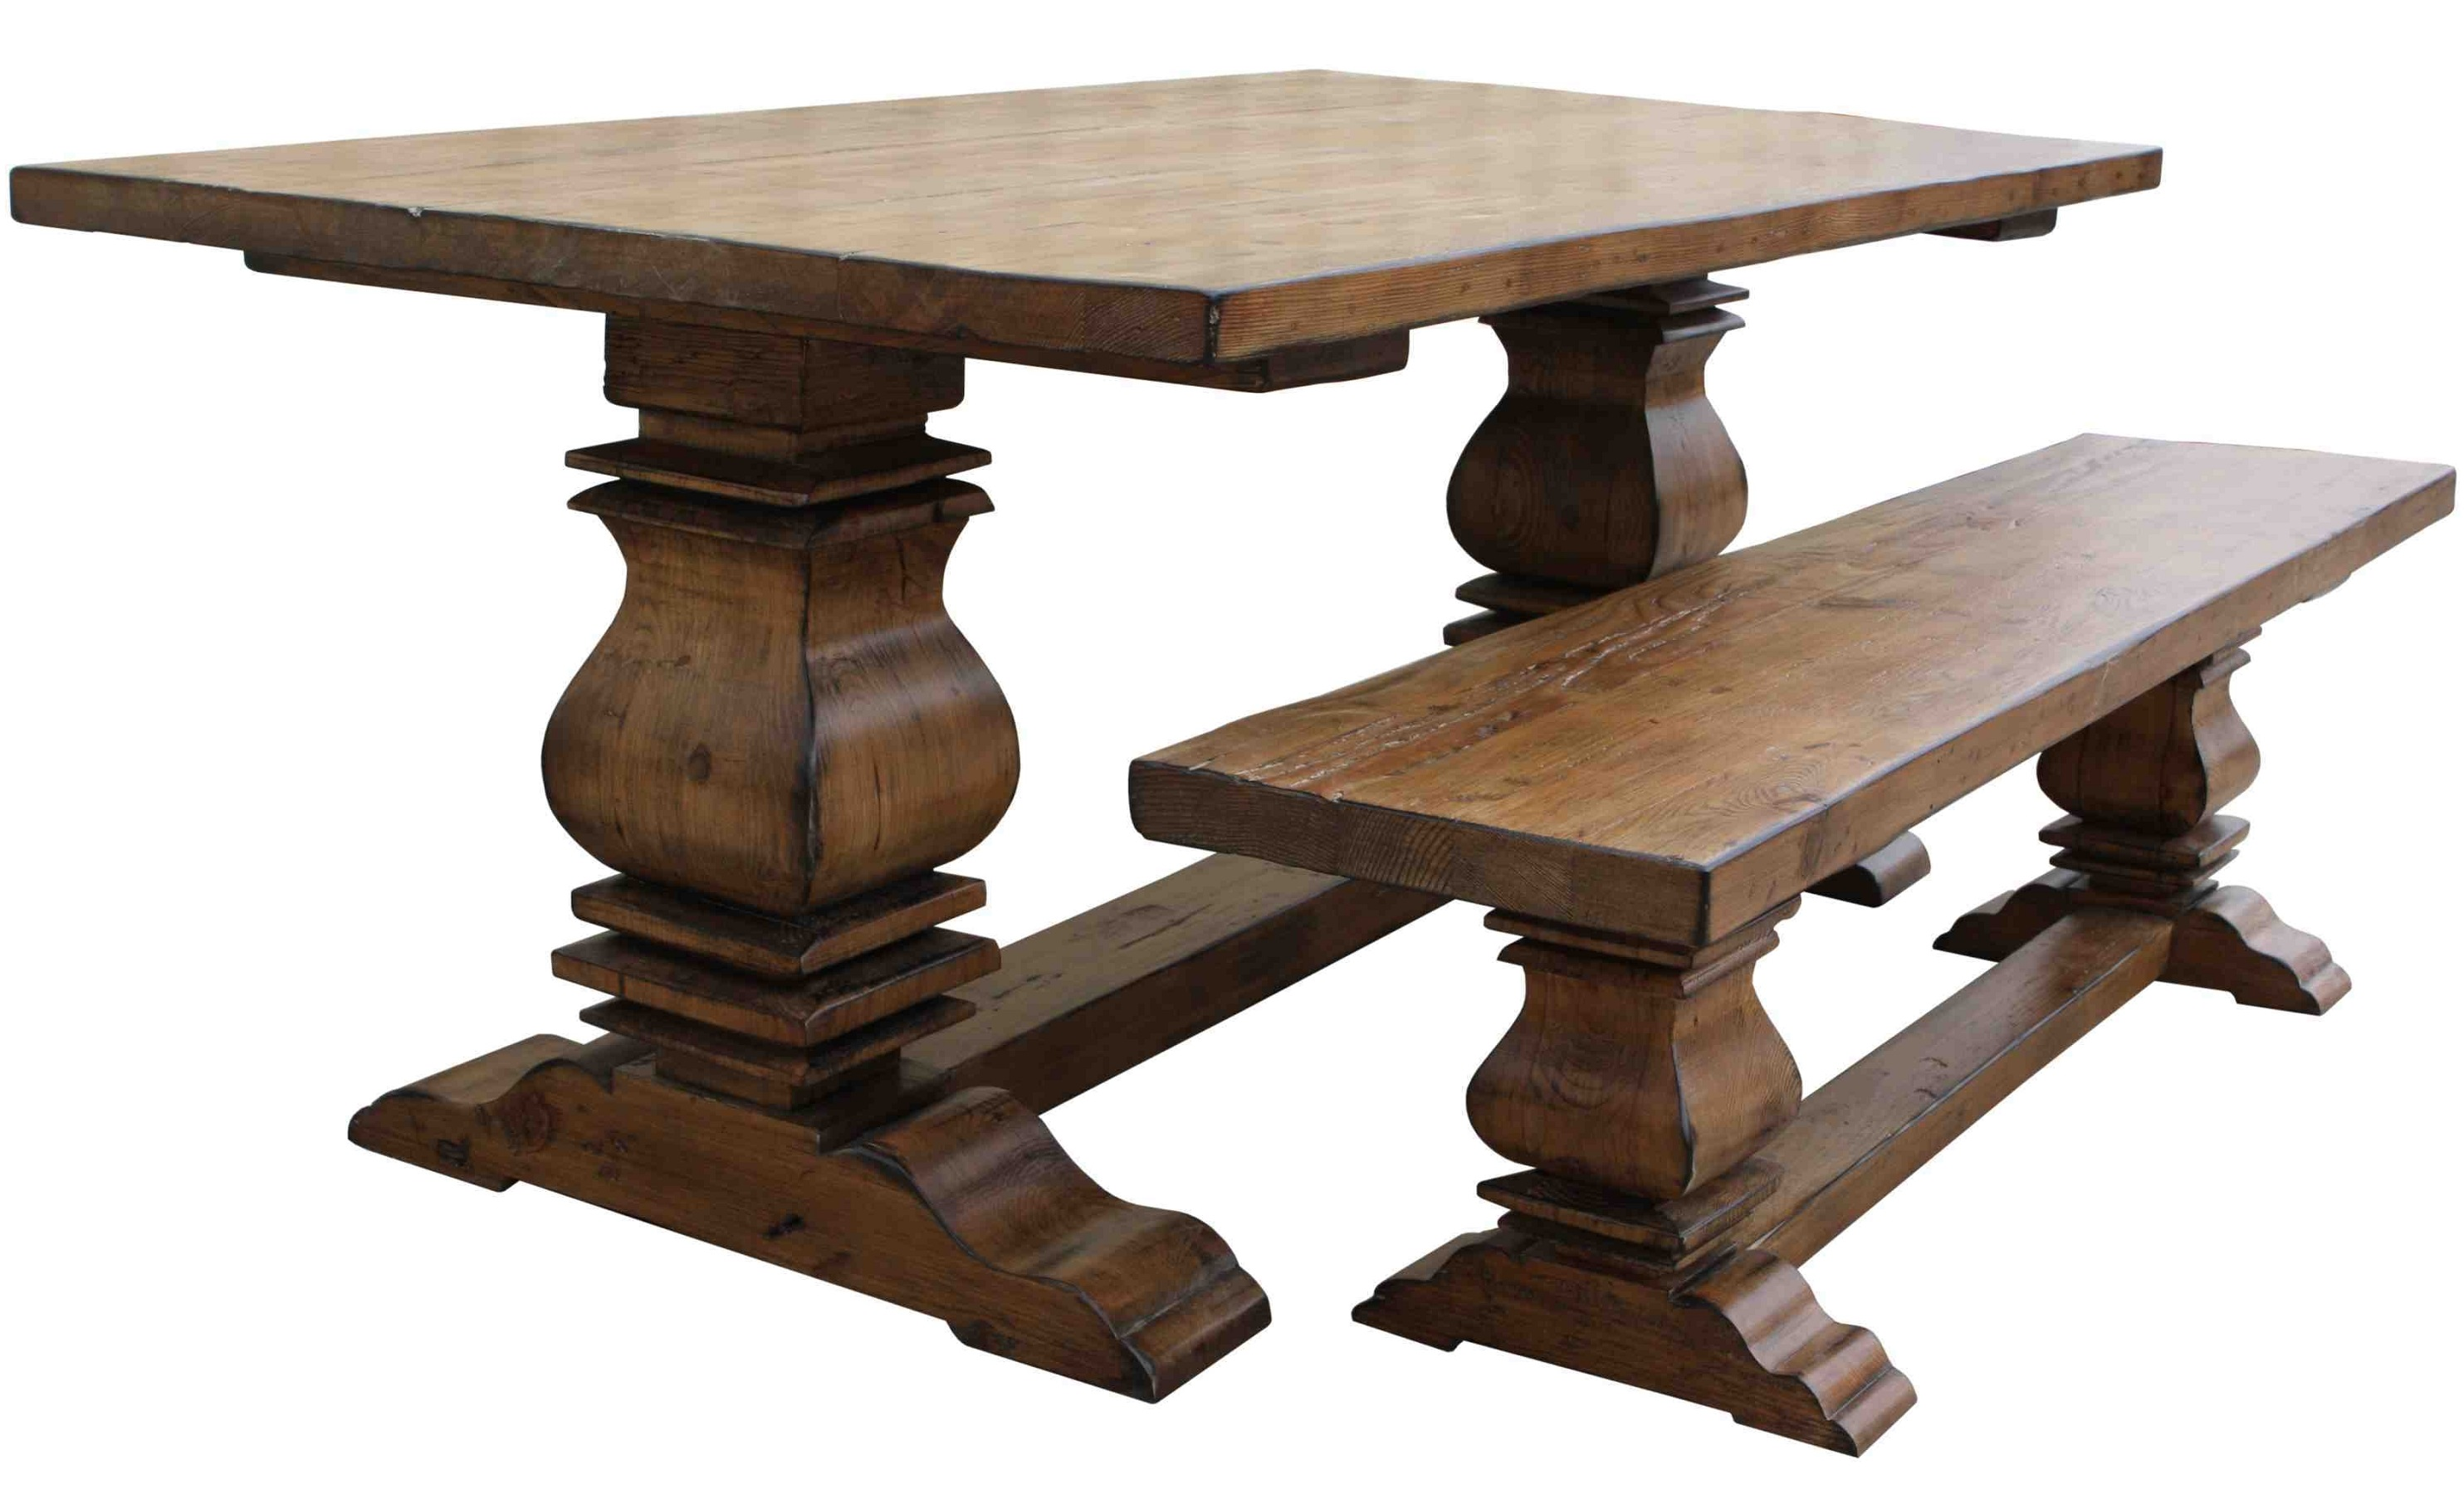 Old World Dining Room Sets Design Oval Dining Table Pedestal Base Dining Room Table Pedestal